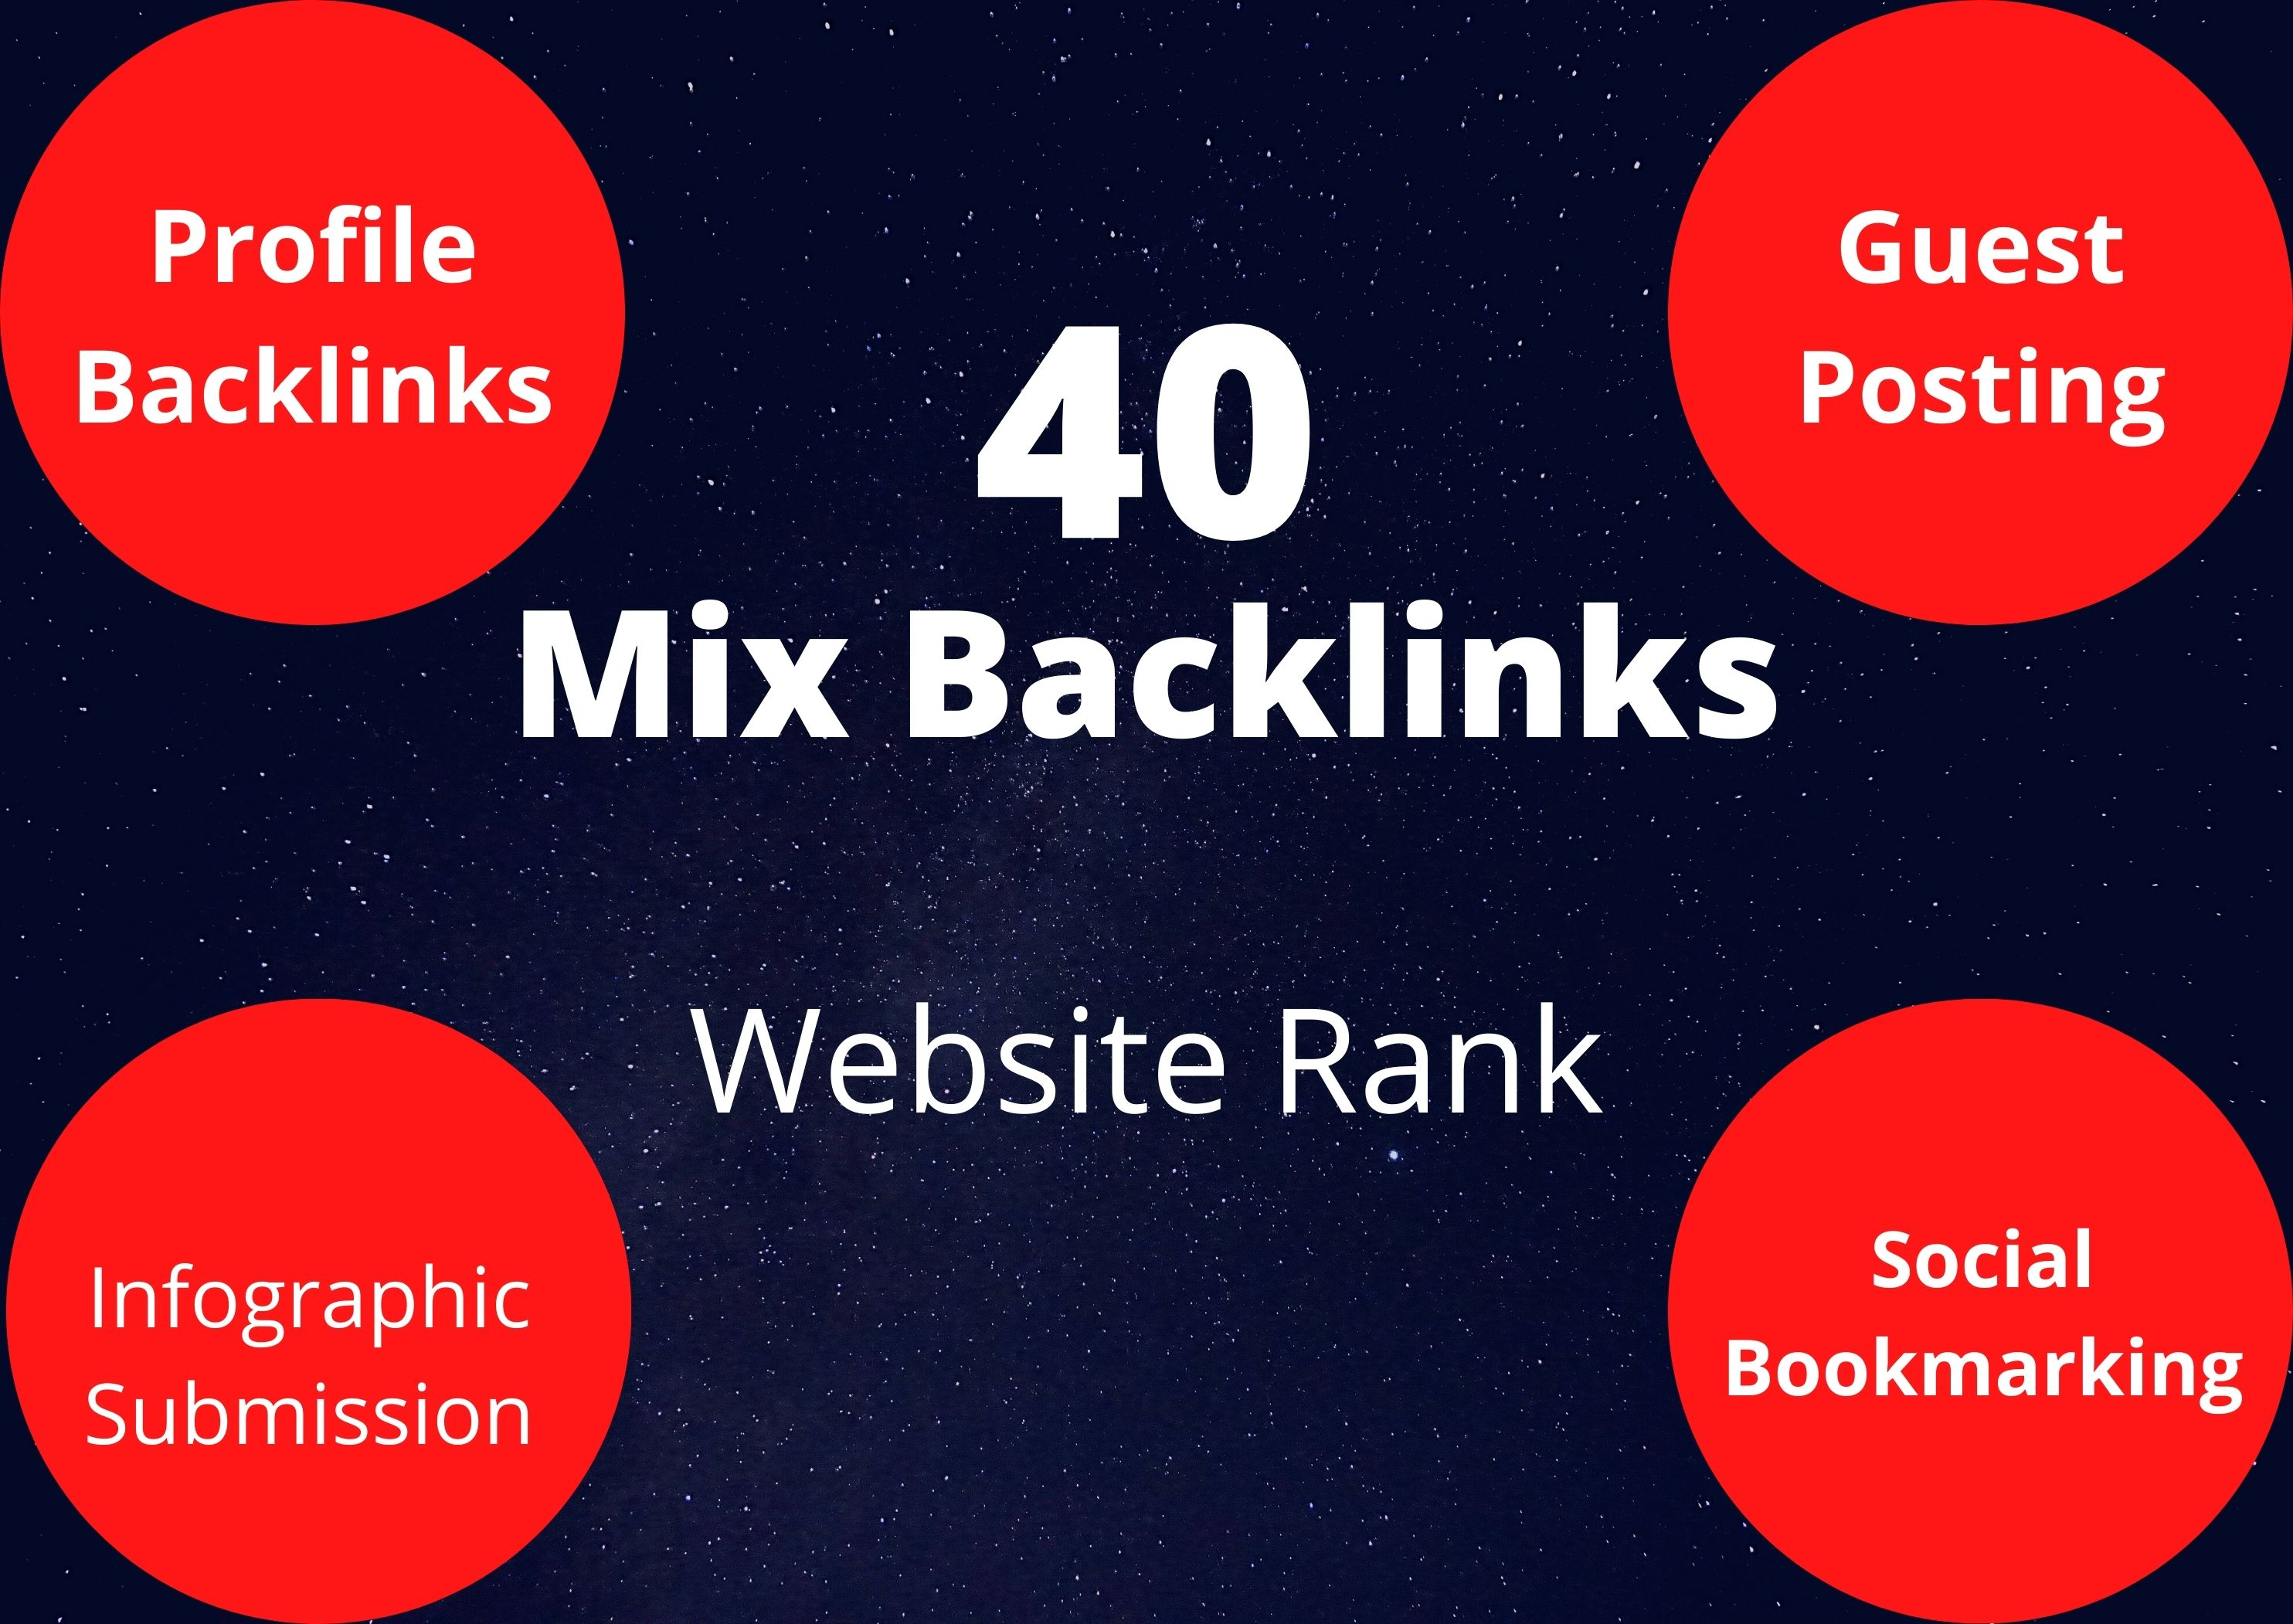 Manual 40 Mixed High Authority Backlinks Boost Your Website Ranking